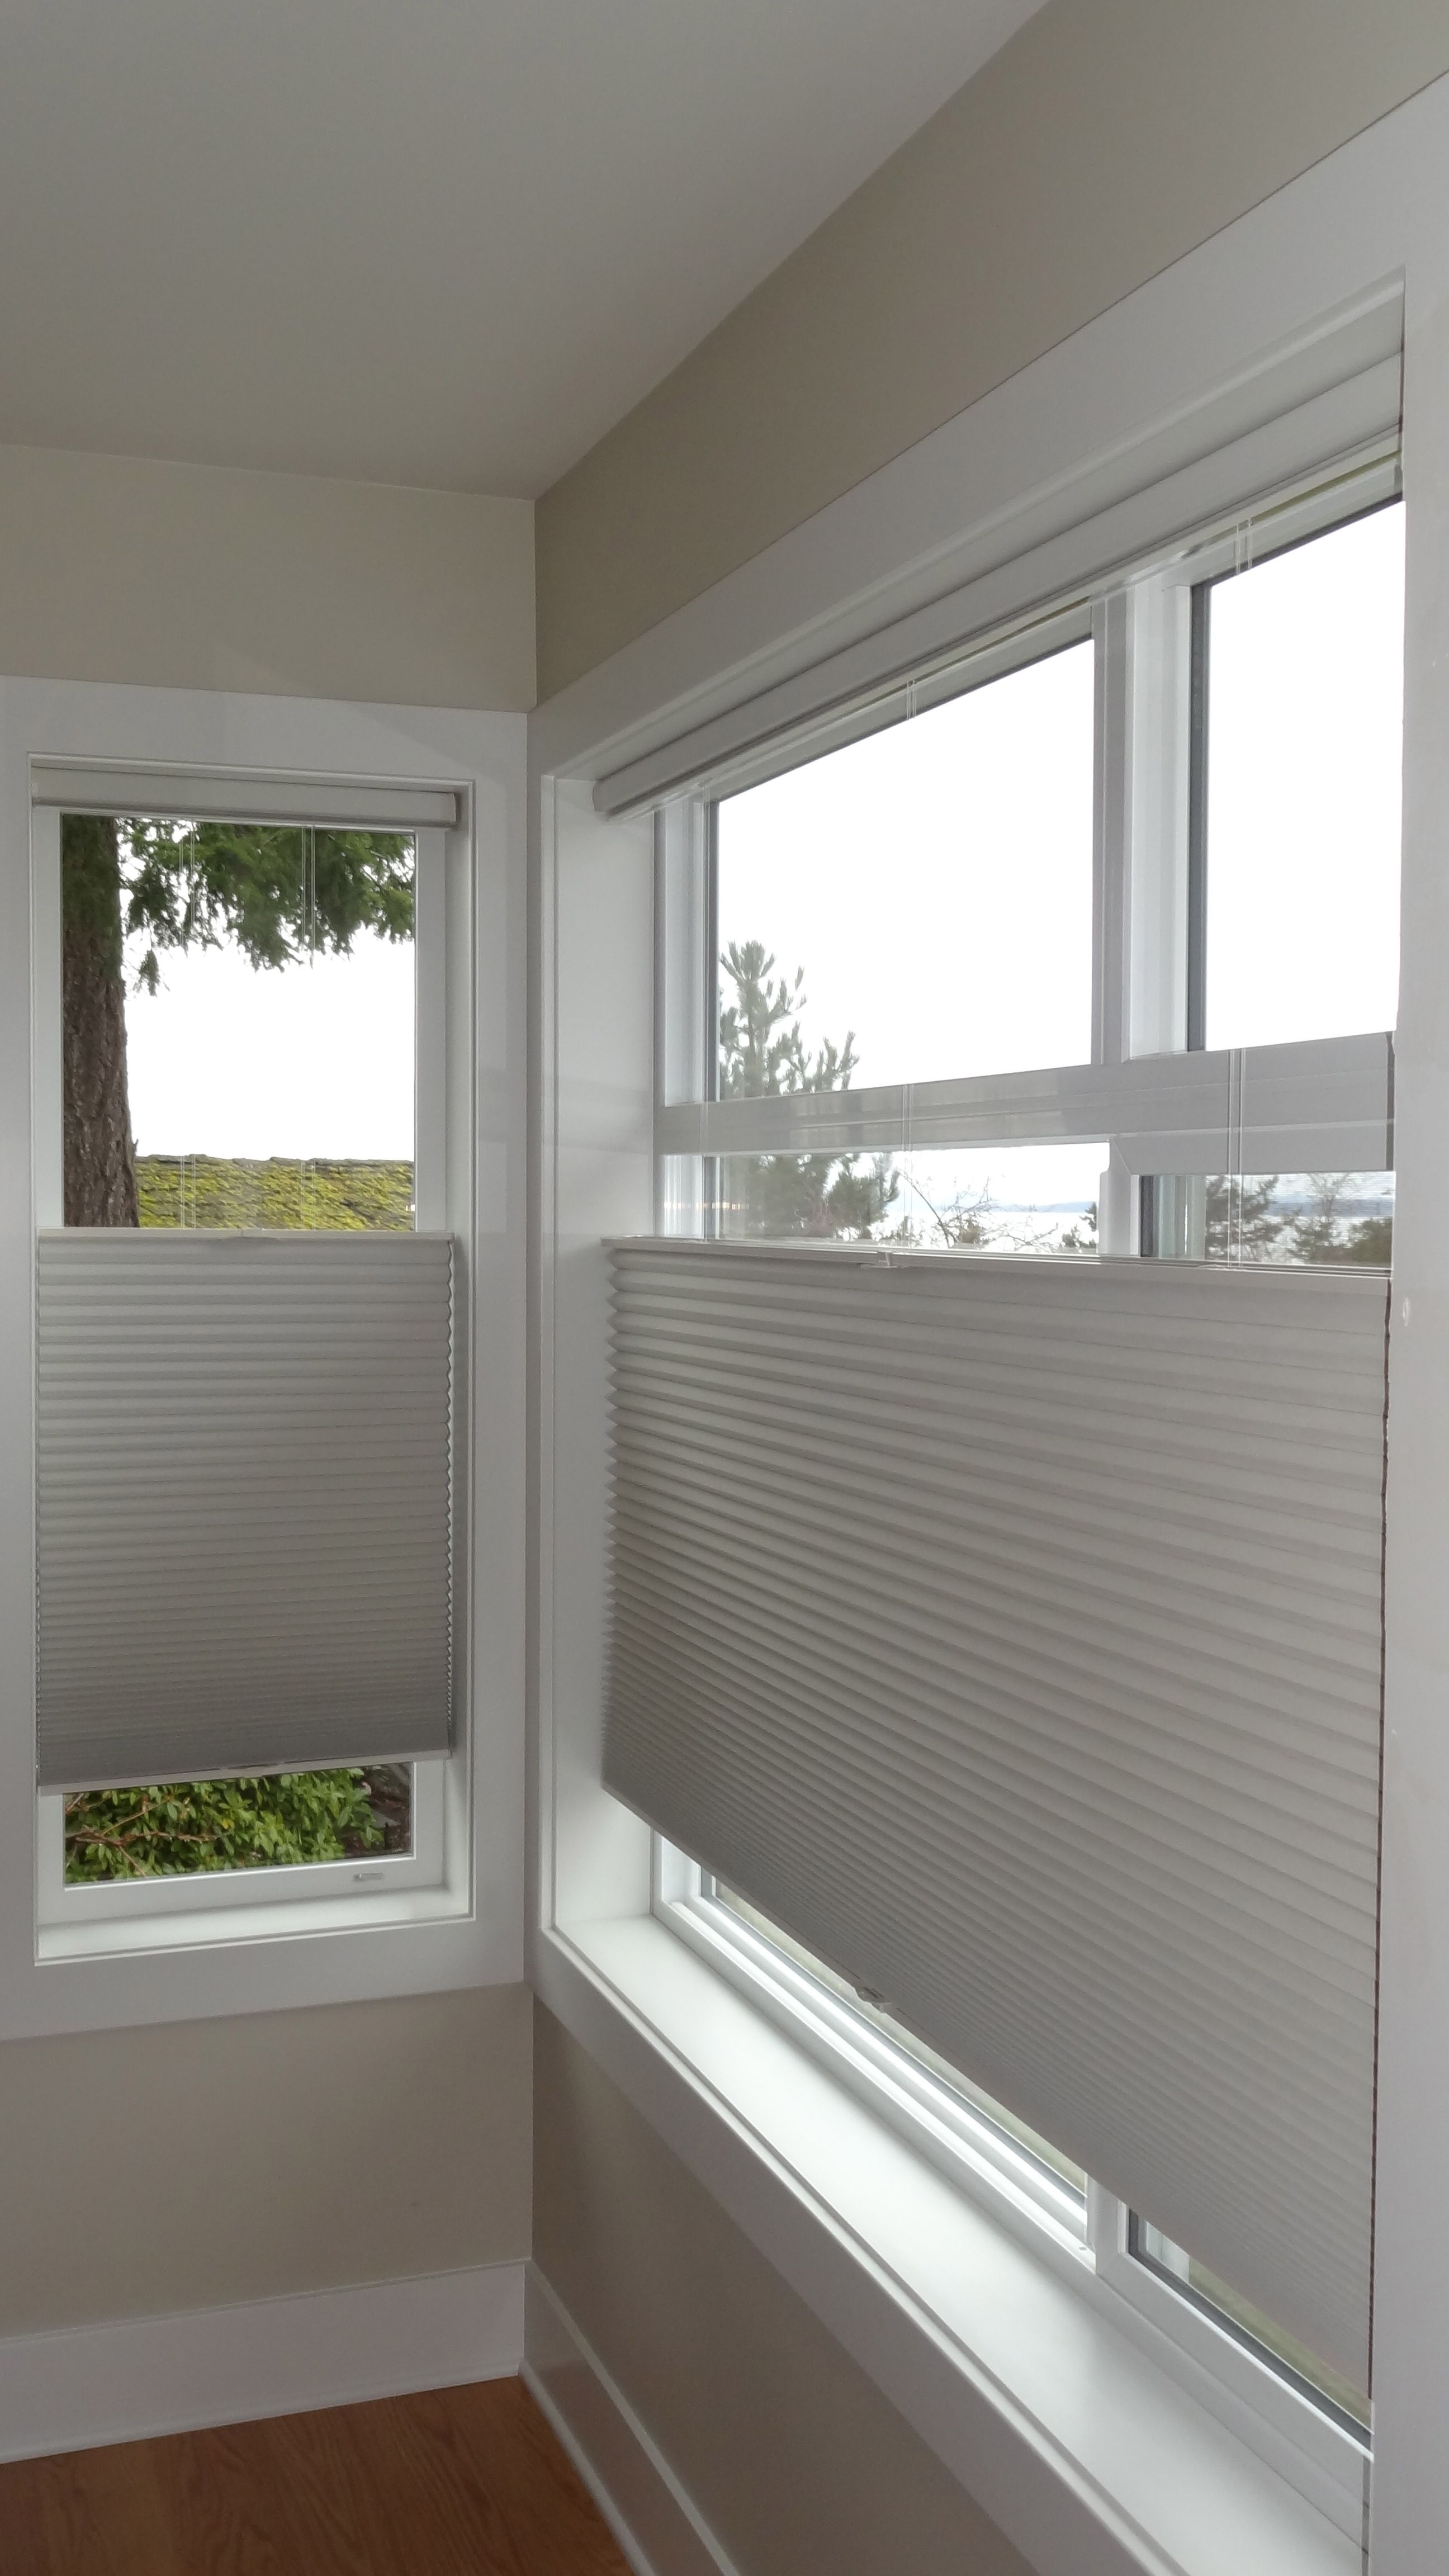 Hunter Douglas Top Down Bottom Up Honeycomb Shades Cordless Bathroom Window Coverings Curtains With Blinds Honeycomb Shades